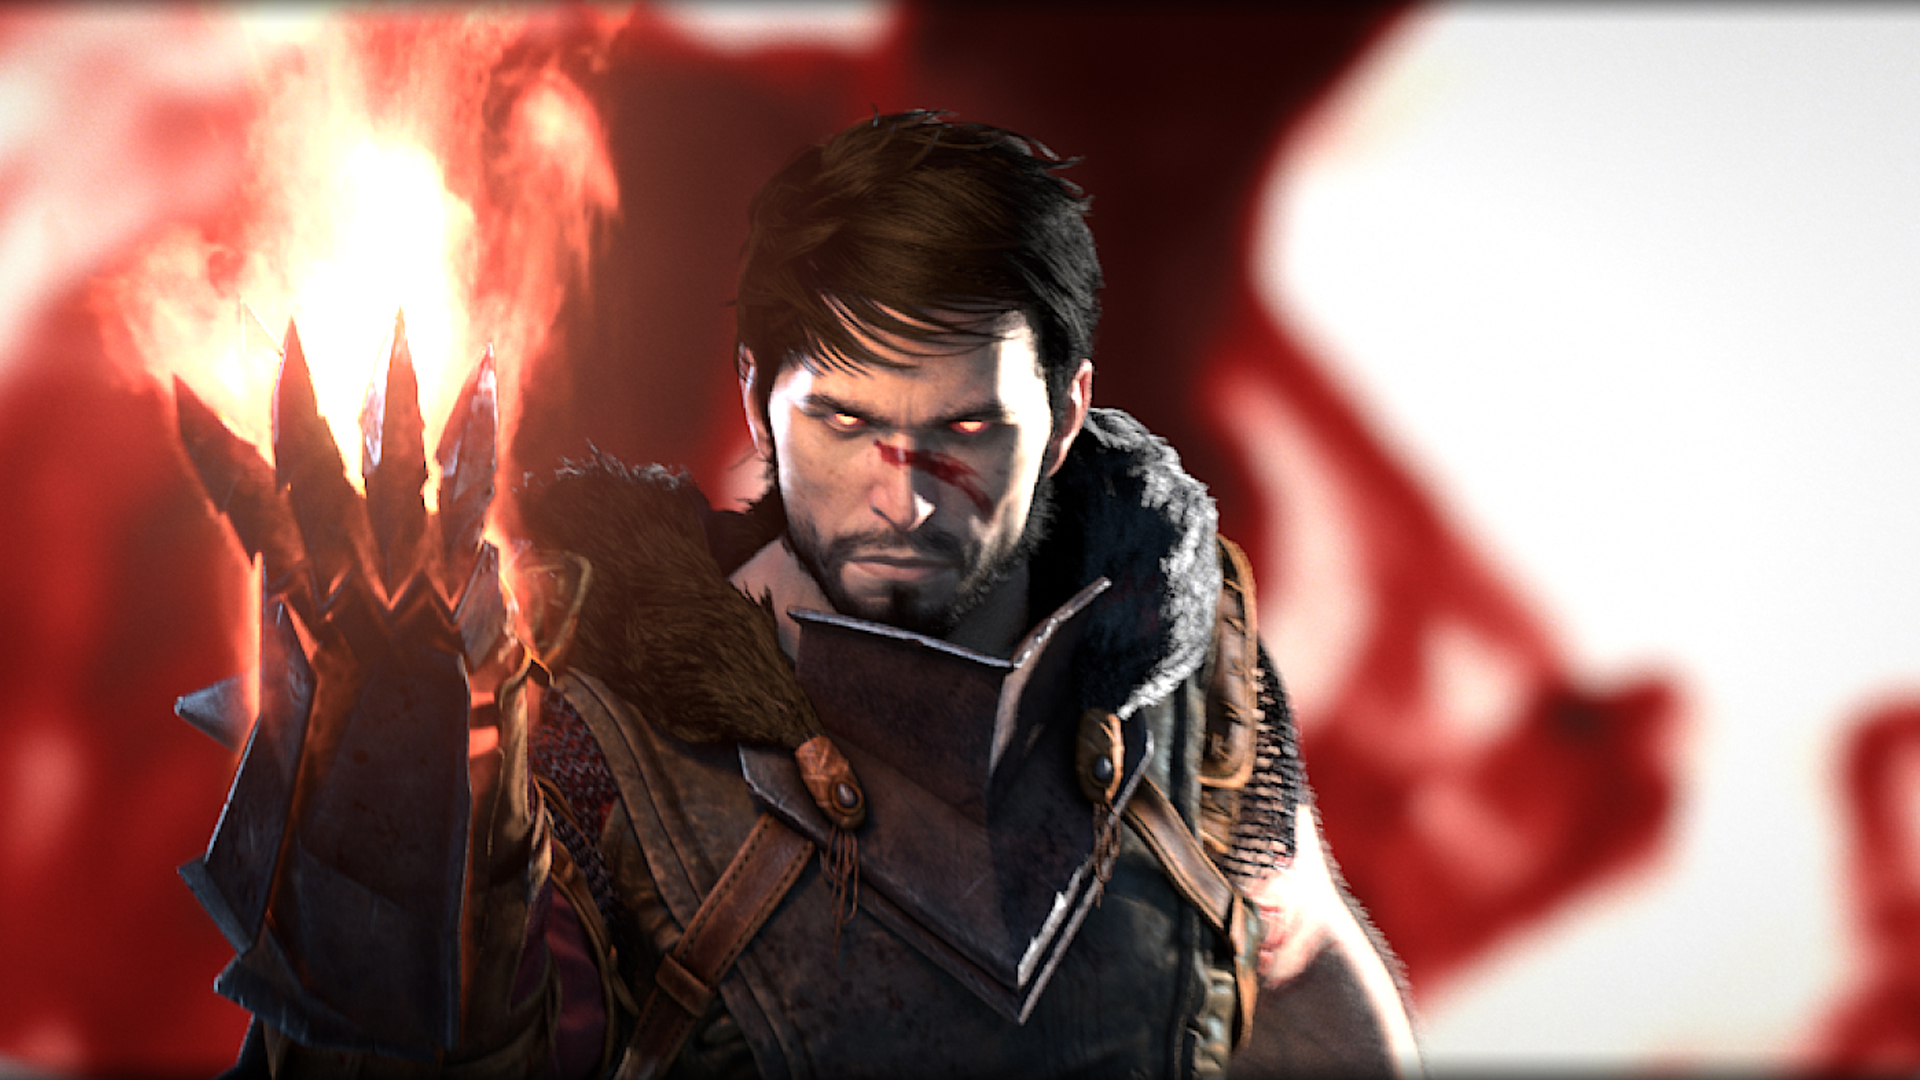 hawke-dragon-age-2-dragon-age-ii-games-1920x1080-wallpaper280486.jpg